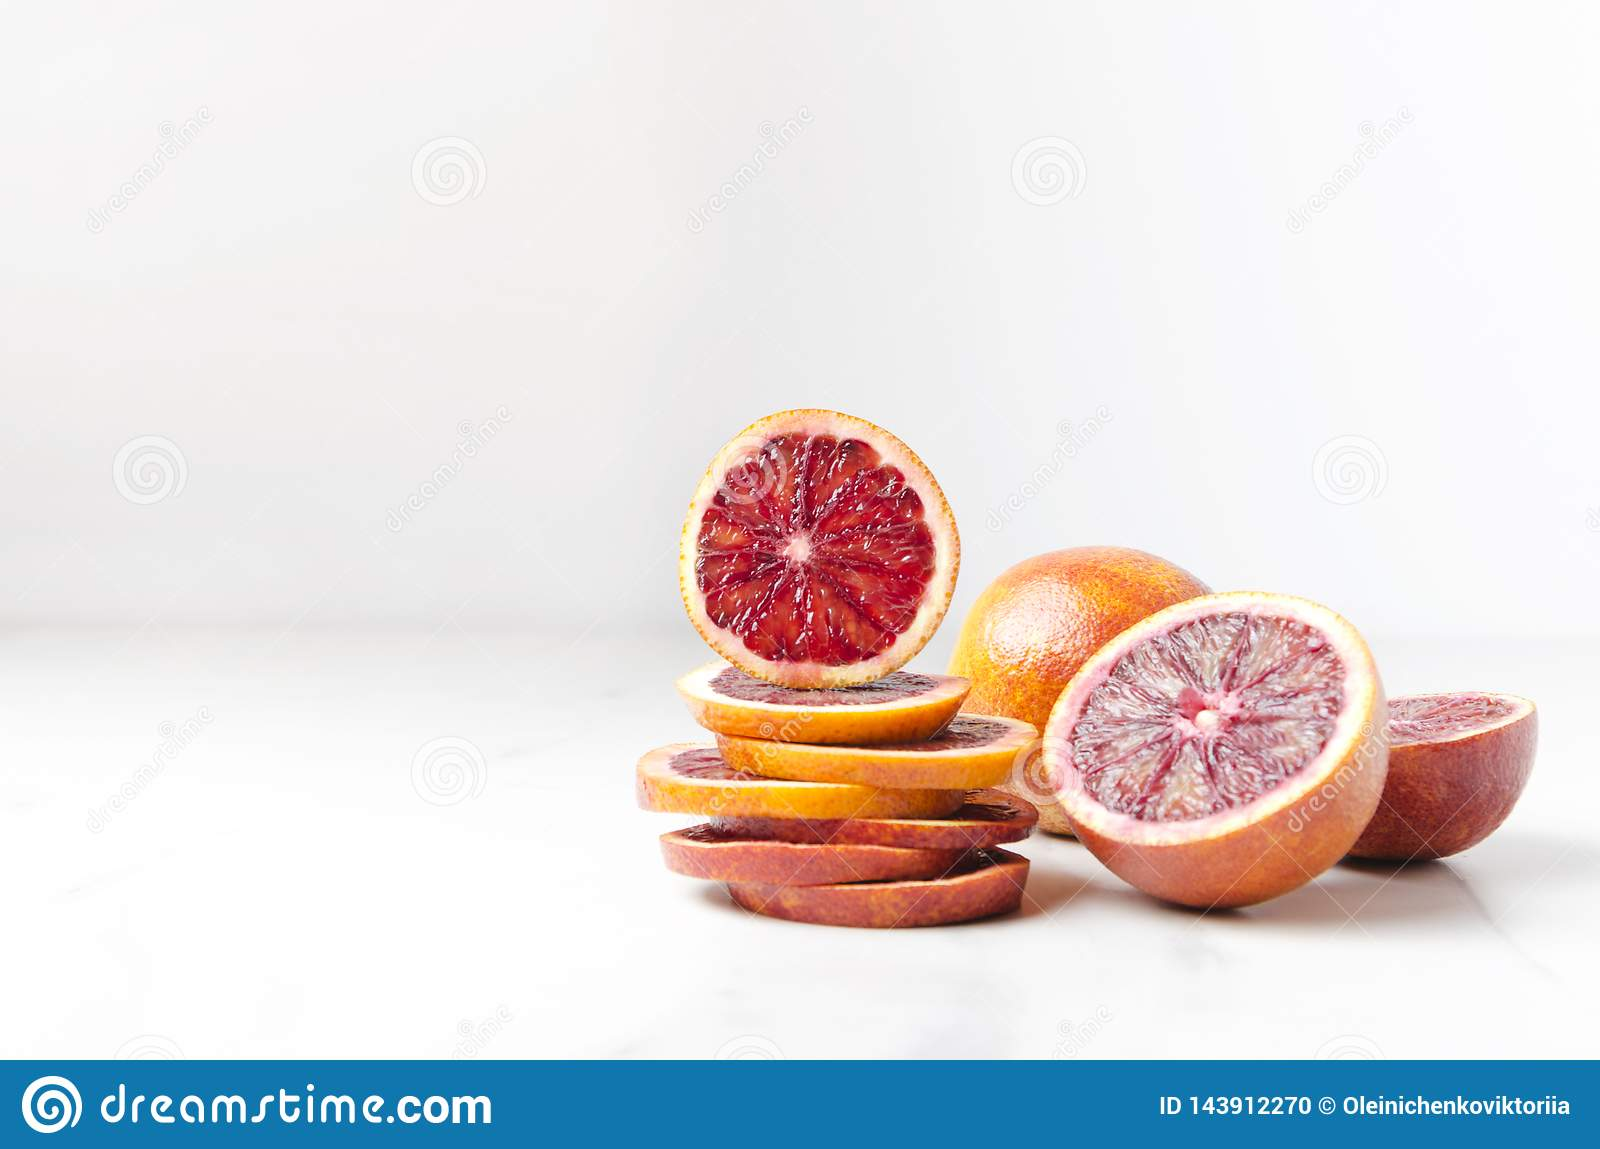 Pile of blood orange slices and halfs of it on the white table.Empty space for your design